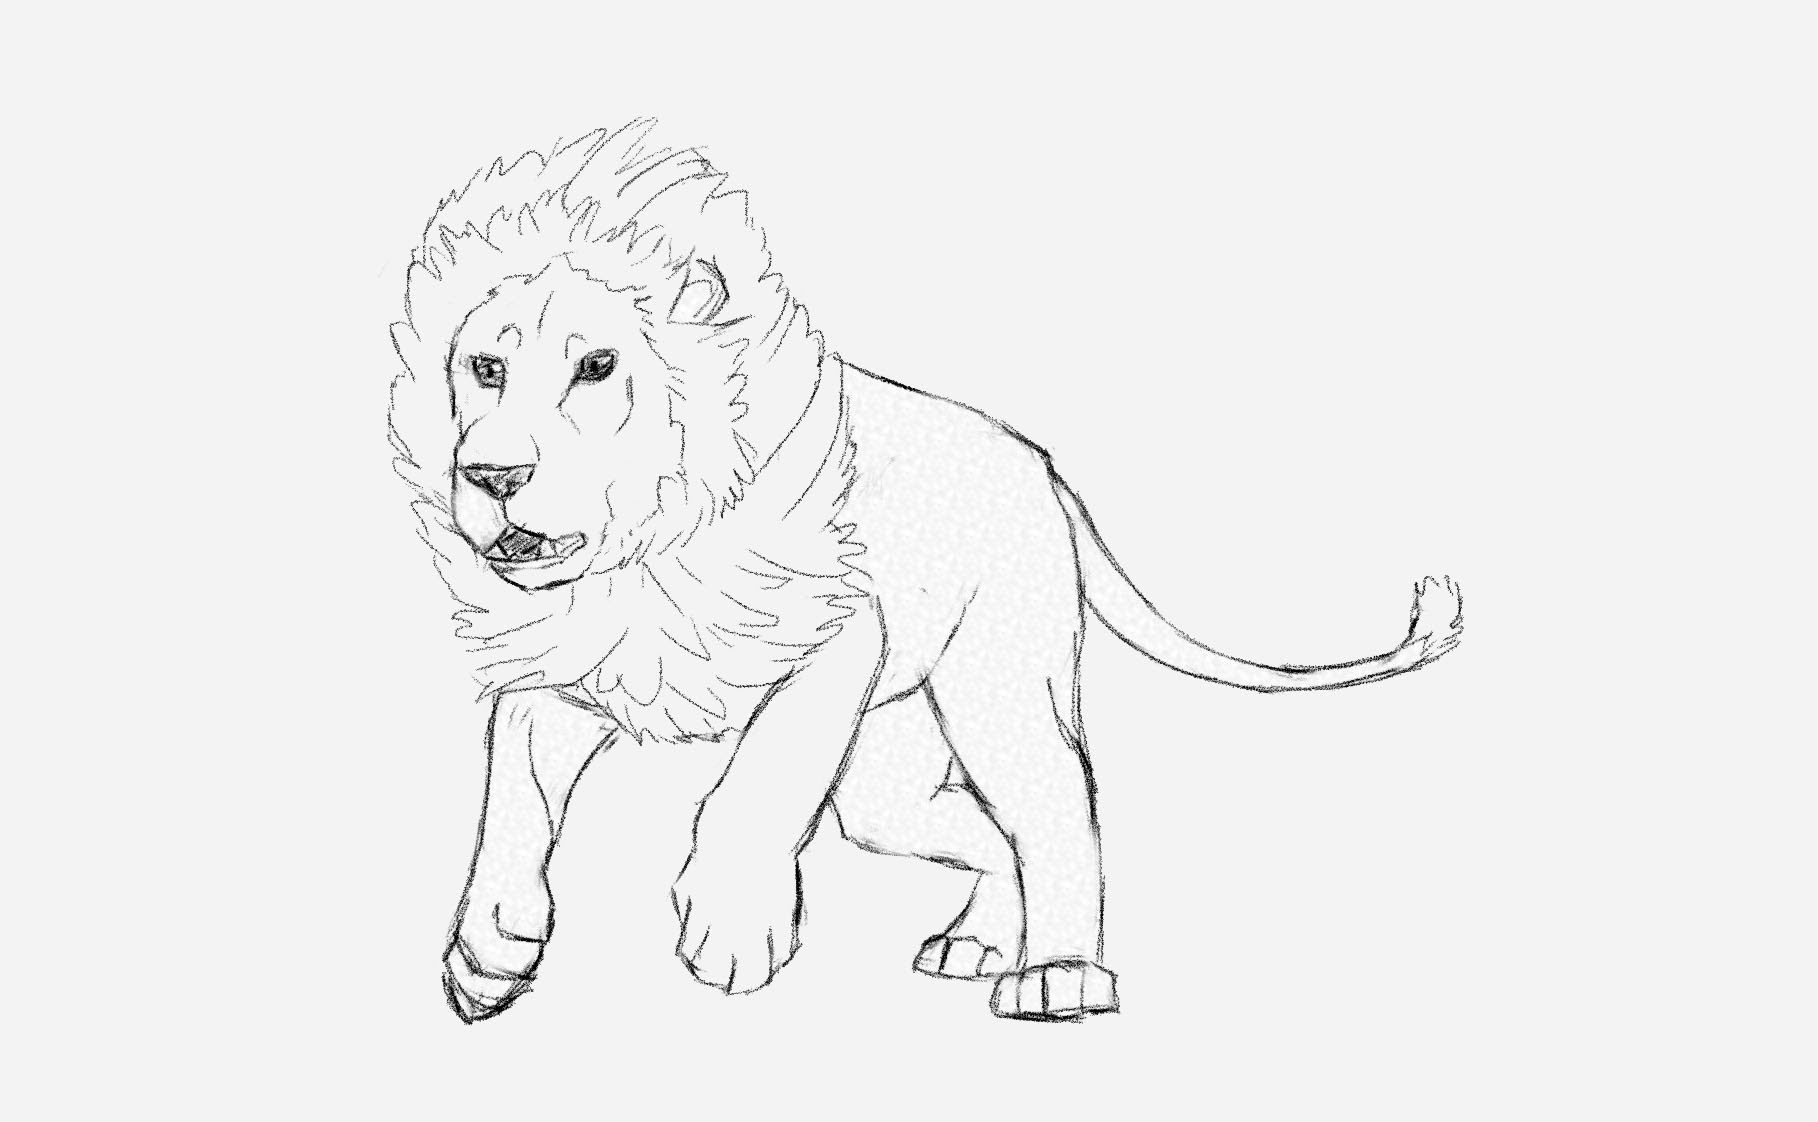 1818x1122 Pencil Art Sketch Drawings Beginners Of Lions How To Draw A Male